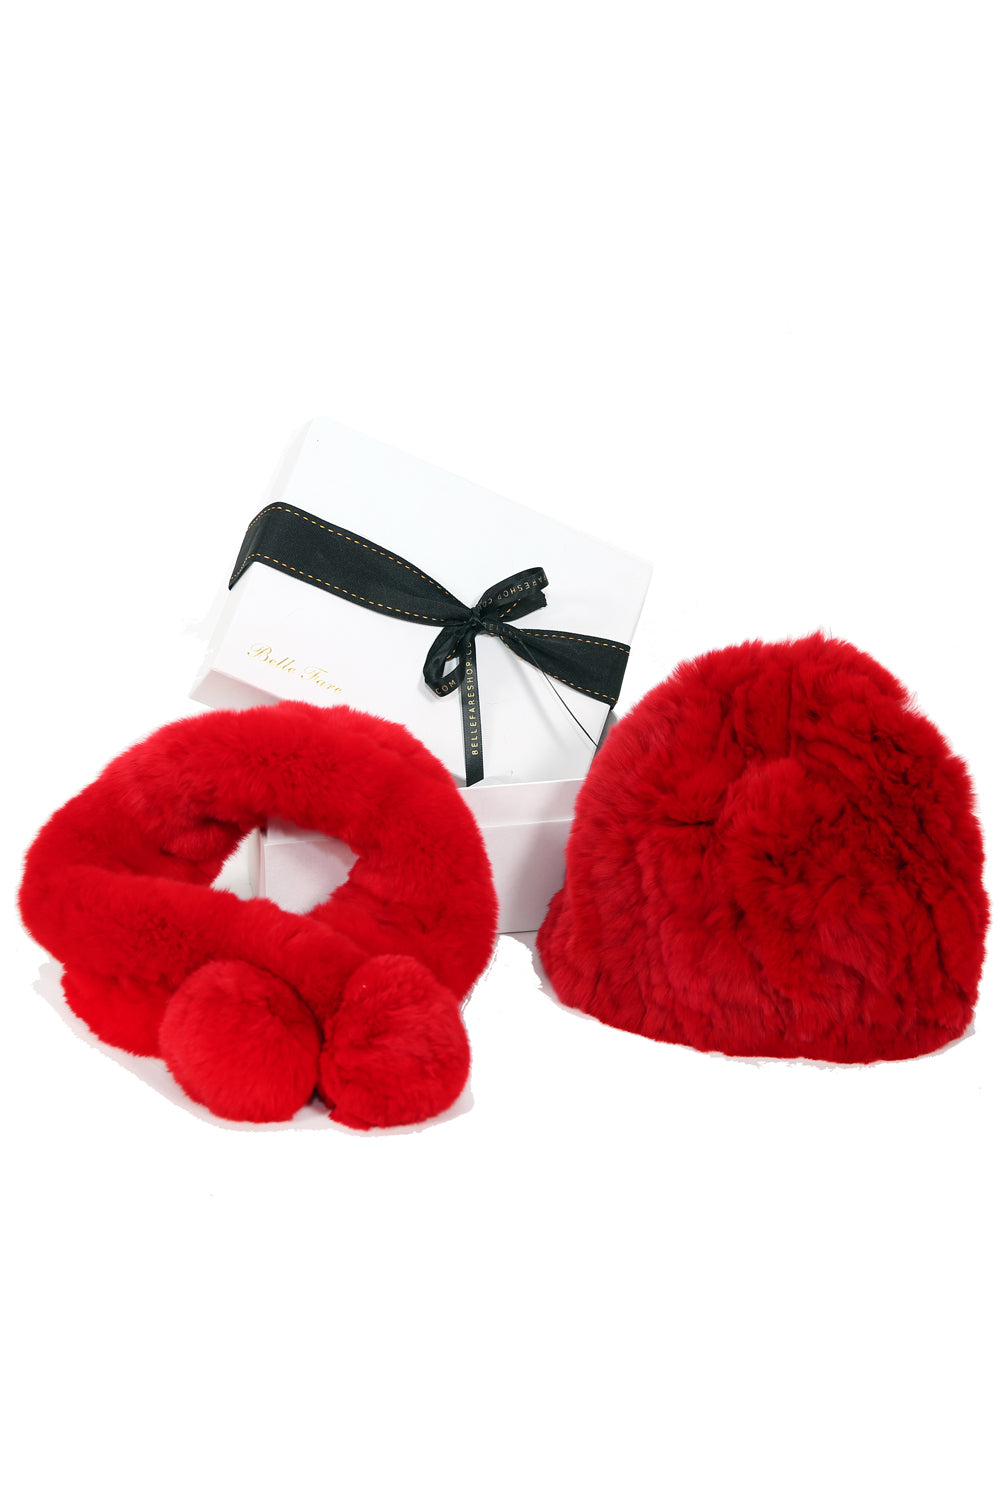 [Special] Neck Warmer and Beanie Hat - Red